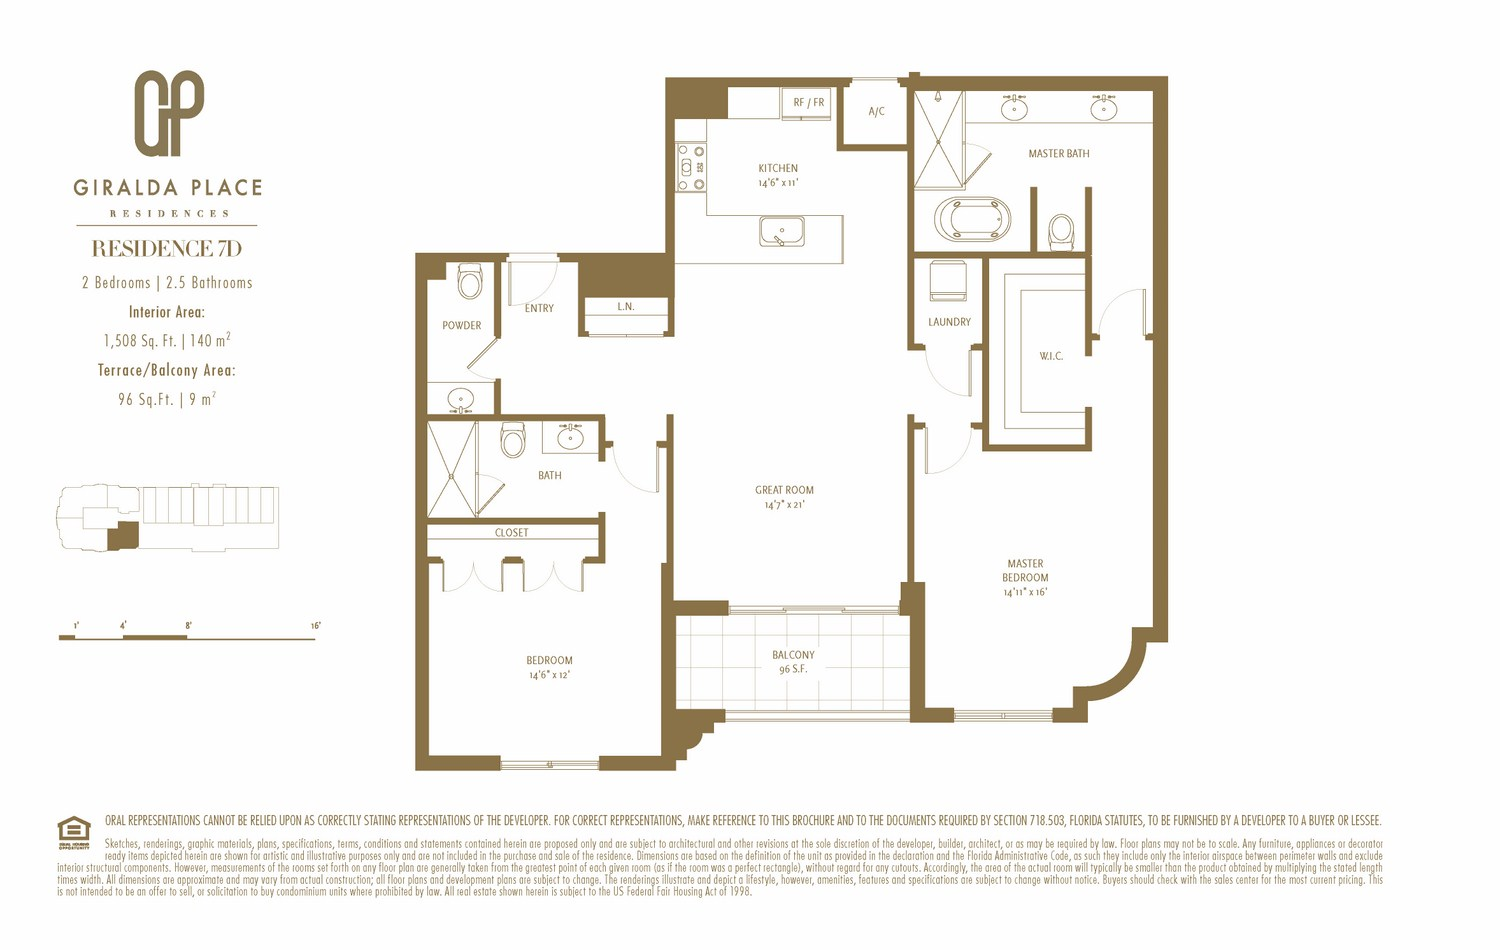 Giralda Place - Floorplan 13